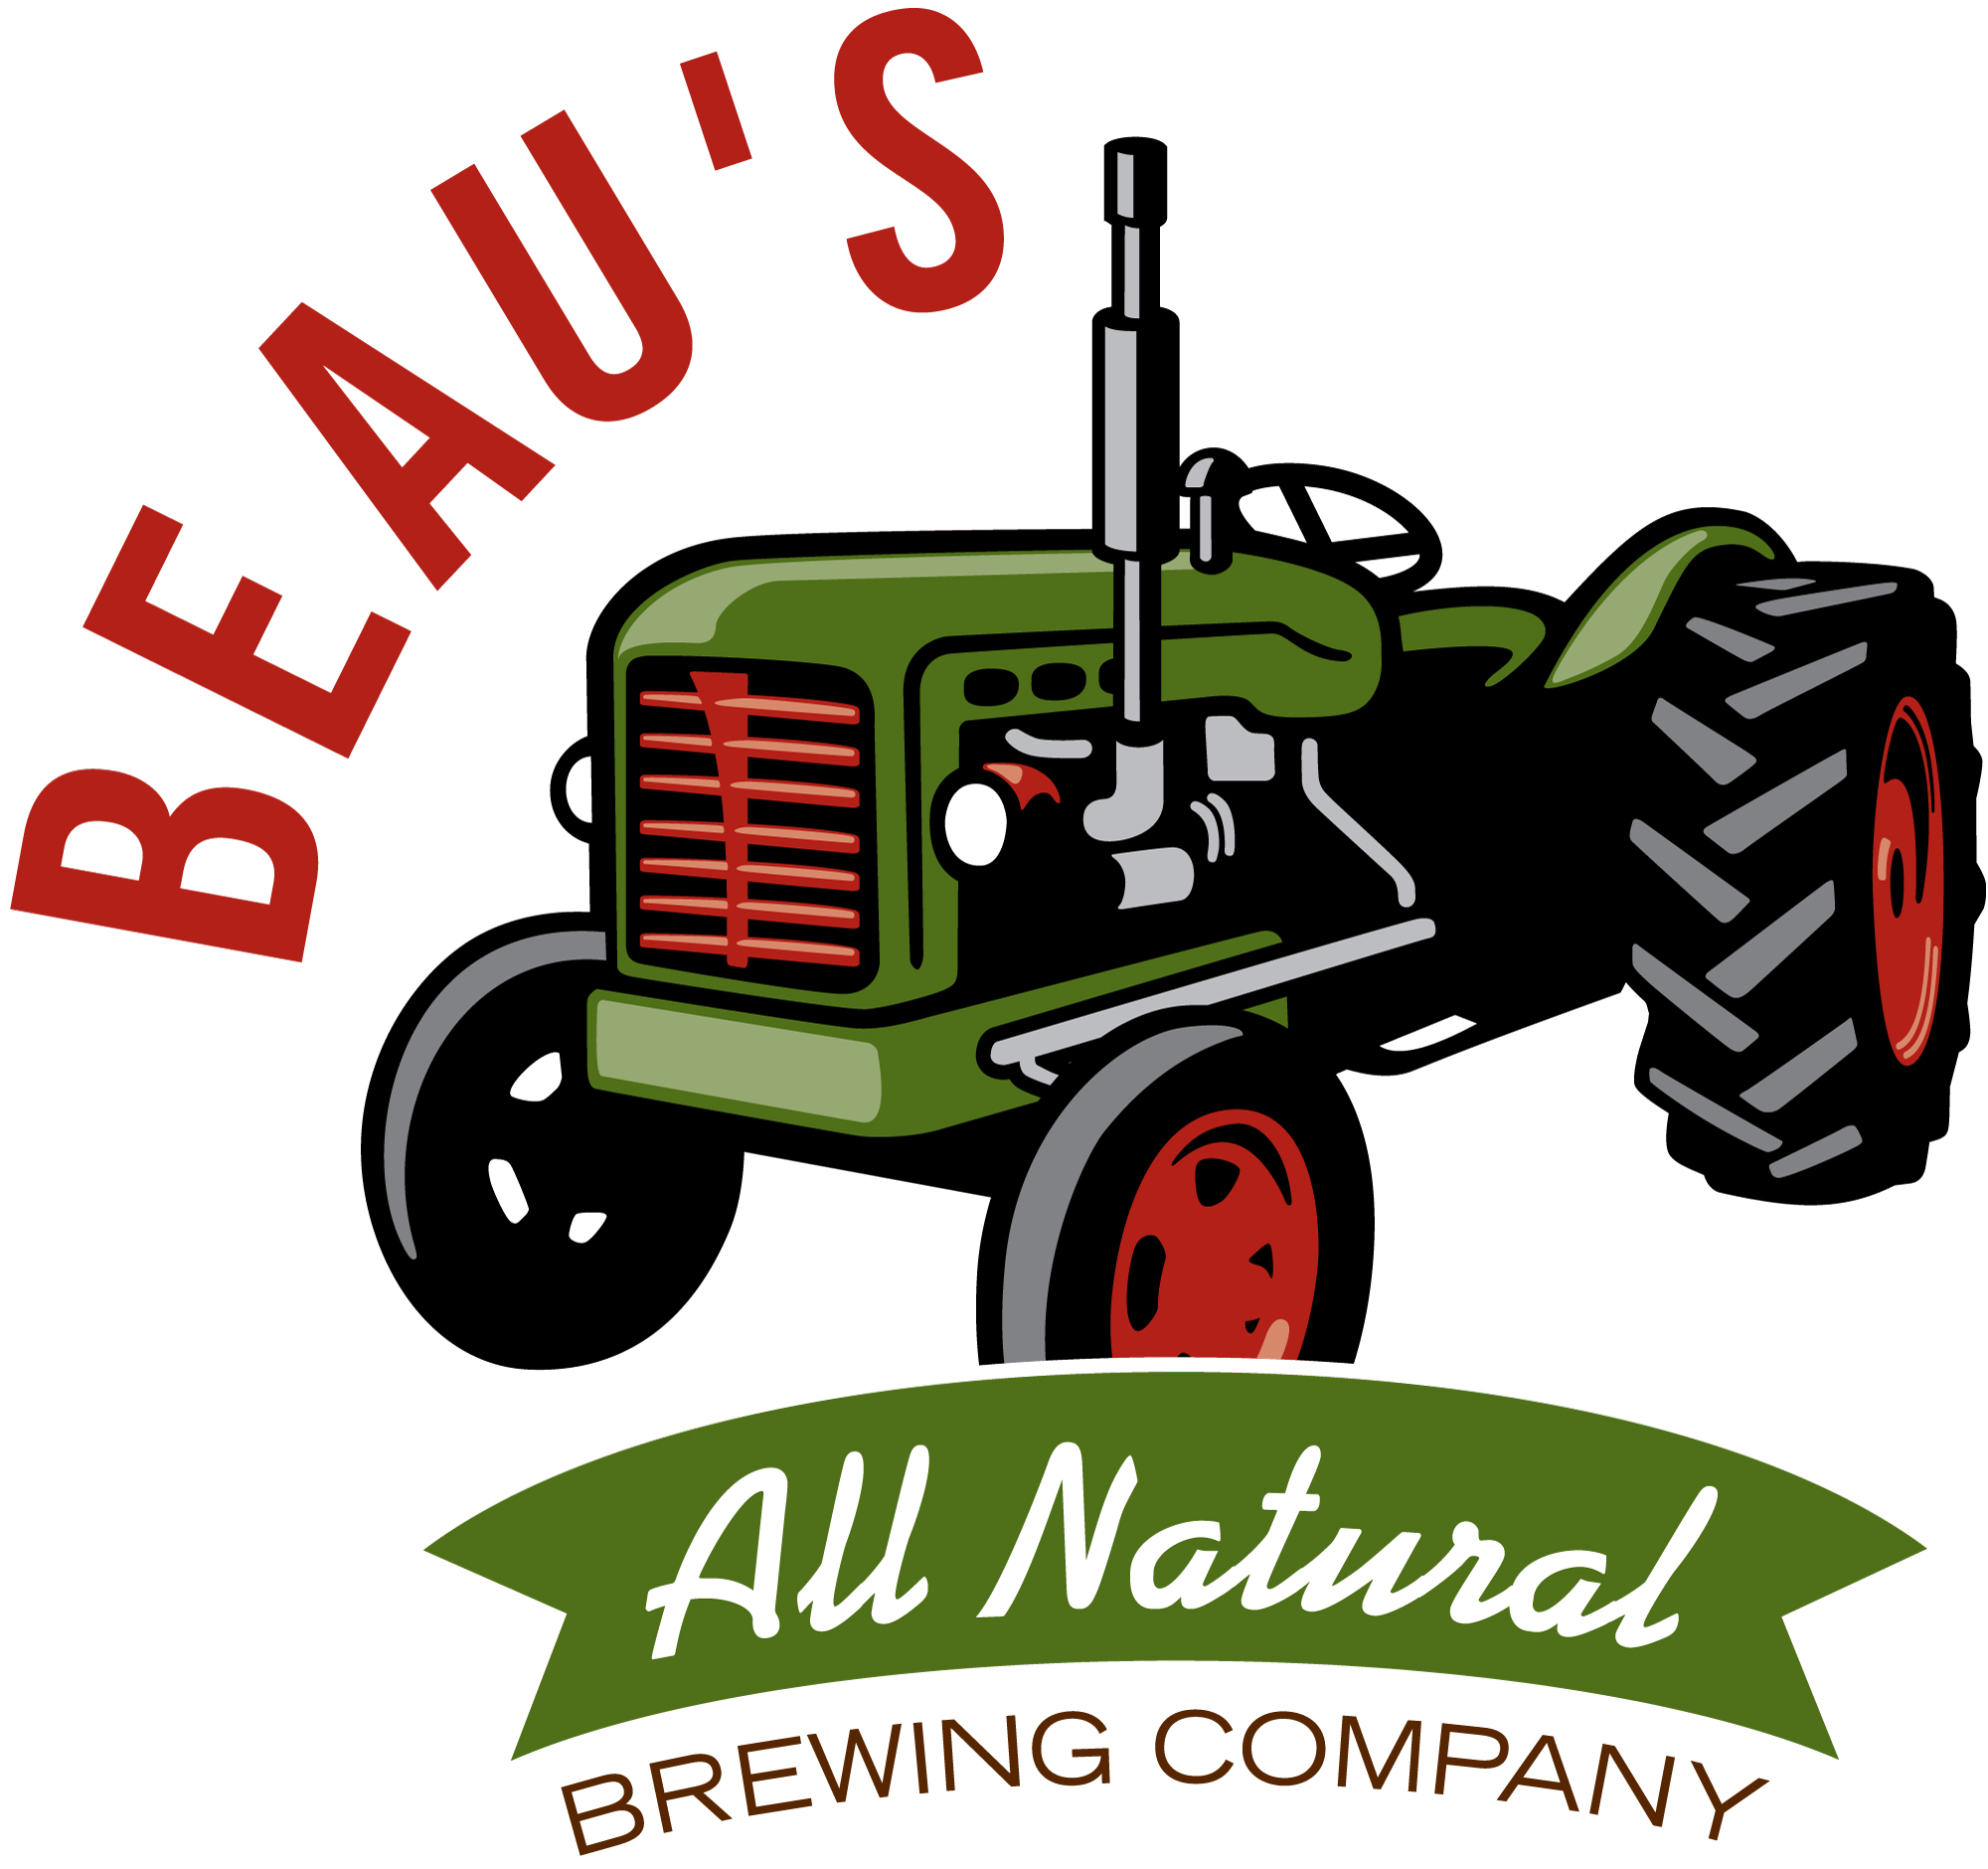 Beau's - Lugtread Lagered Ale